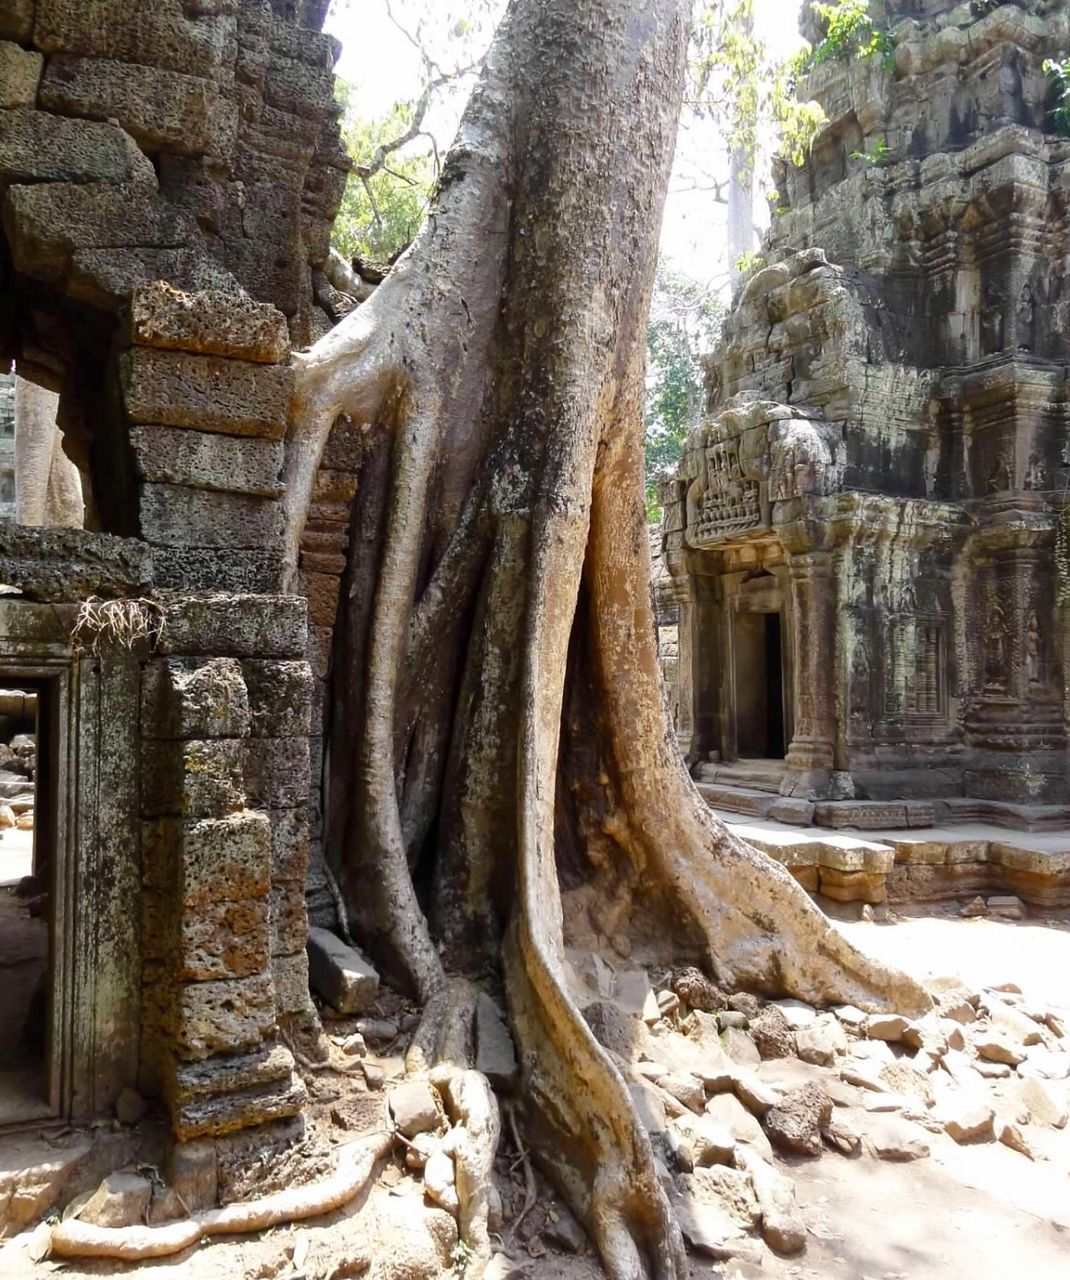 old ruin, ancient, tree trunk, ancient civilization, religion, day, history, tree, travel destinations, architectural column, spirituality, place of worship, nature, no people, root, built structure, outdoors, architecture, statue, sculpture